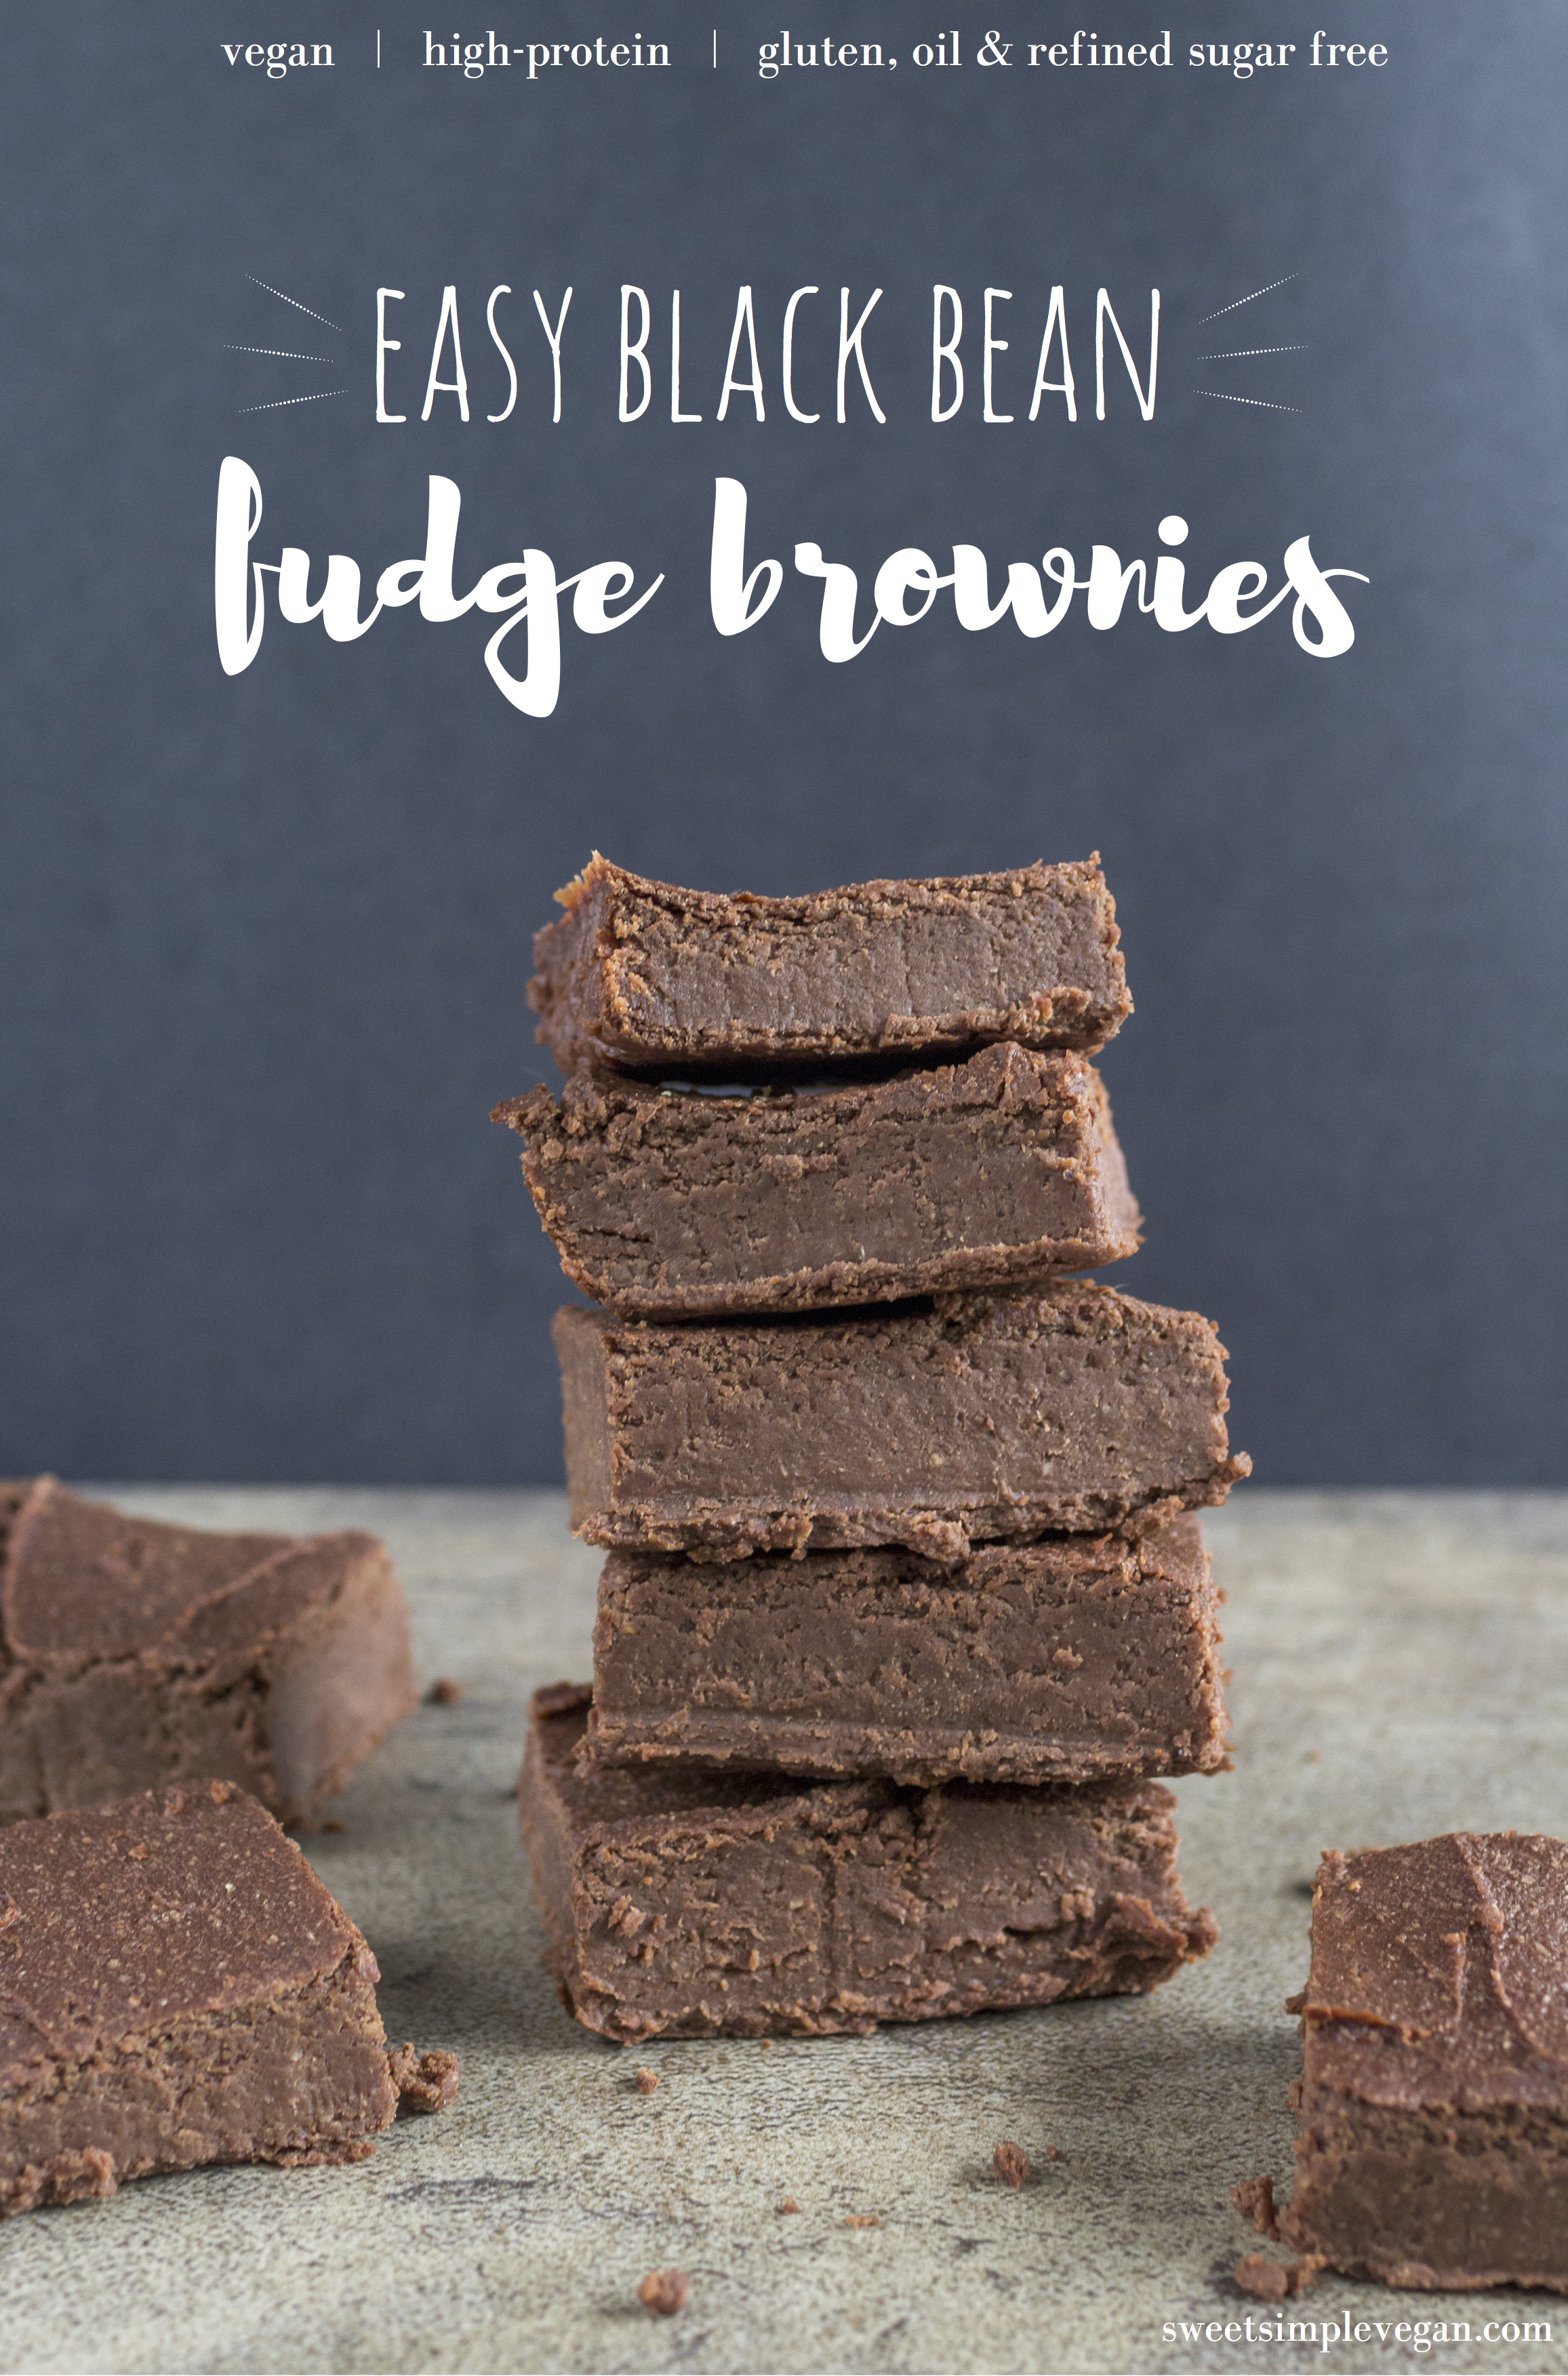 Easy Black Bean Fudge Brownies {high protein, gluten- & oil- and refined sugar-free} sweetsimplevegan.com